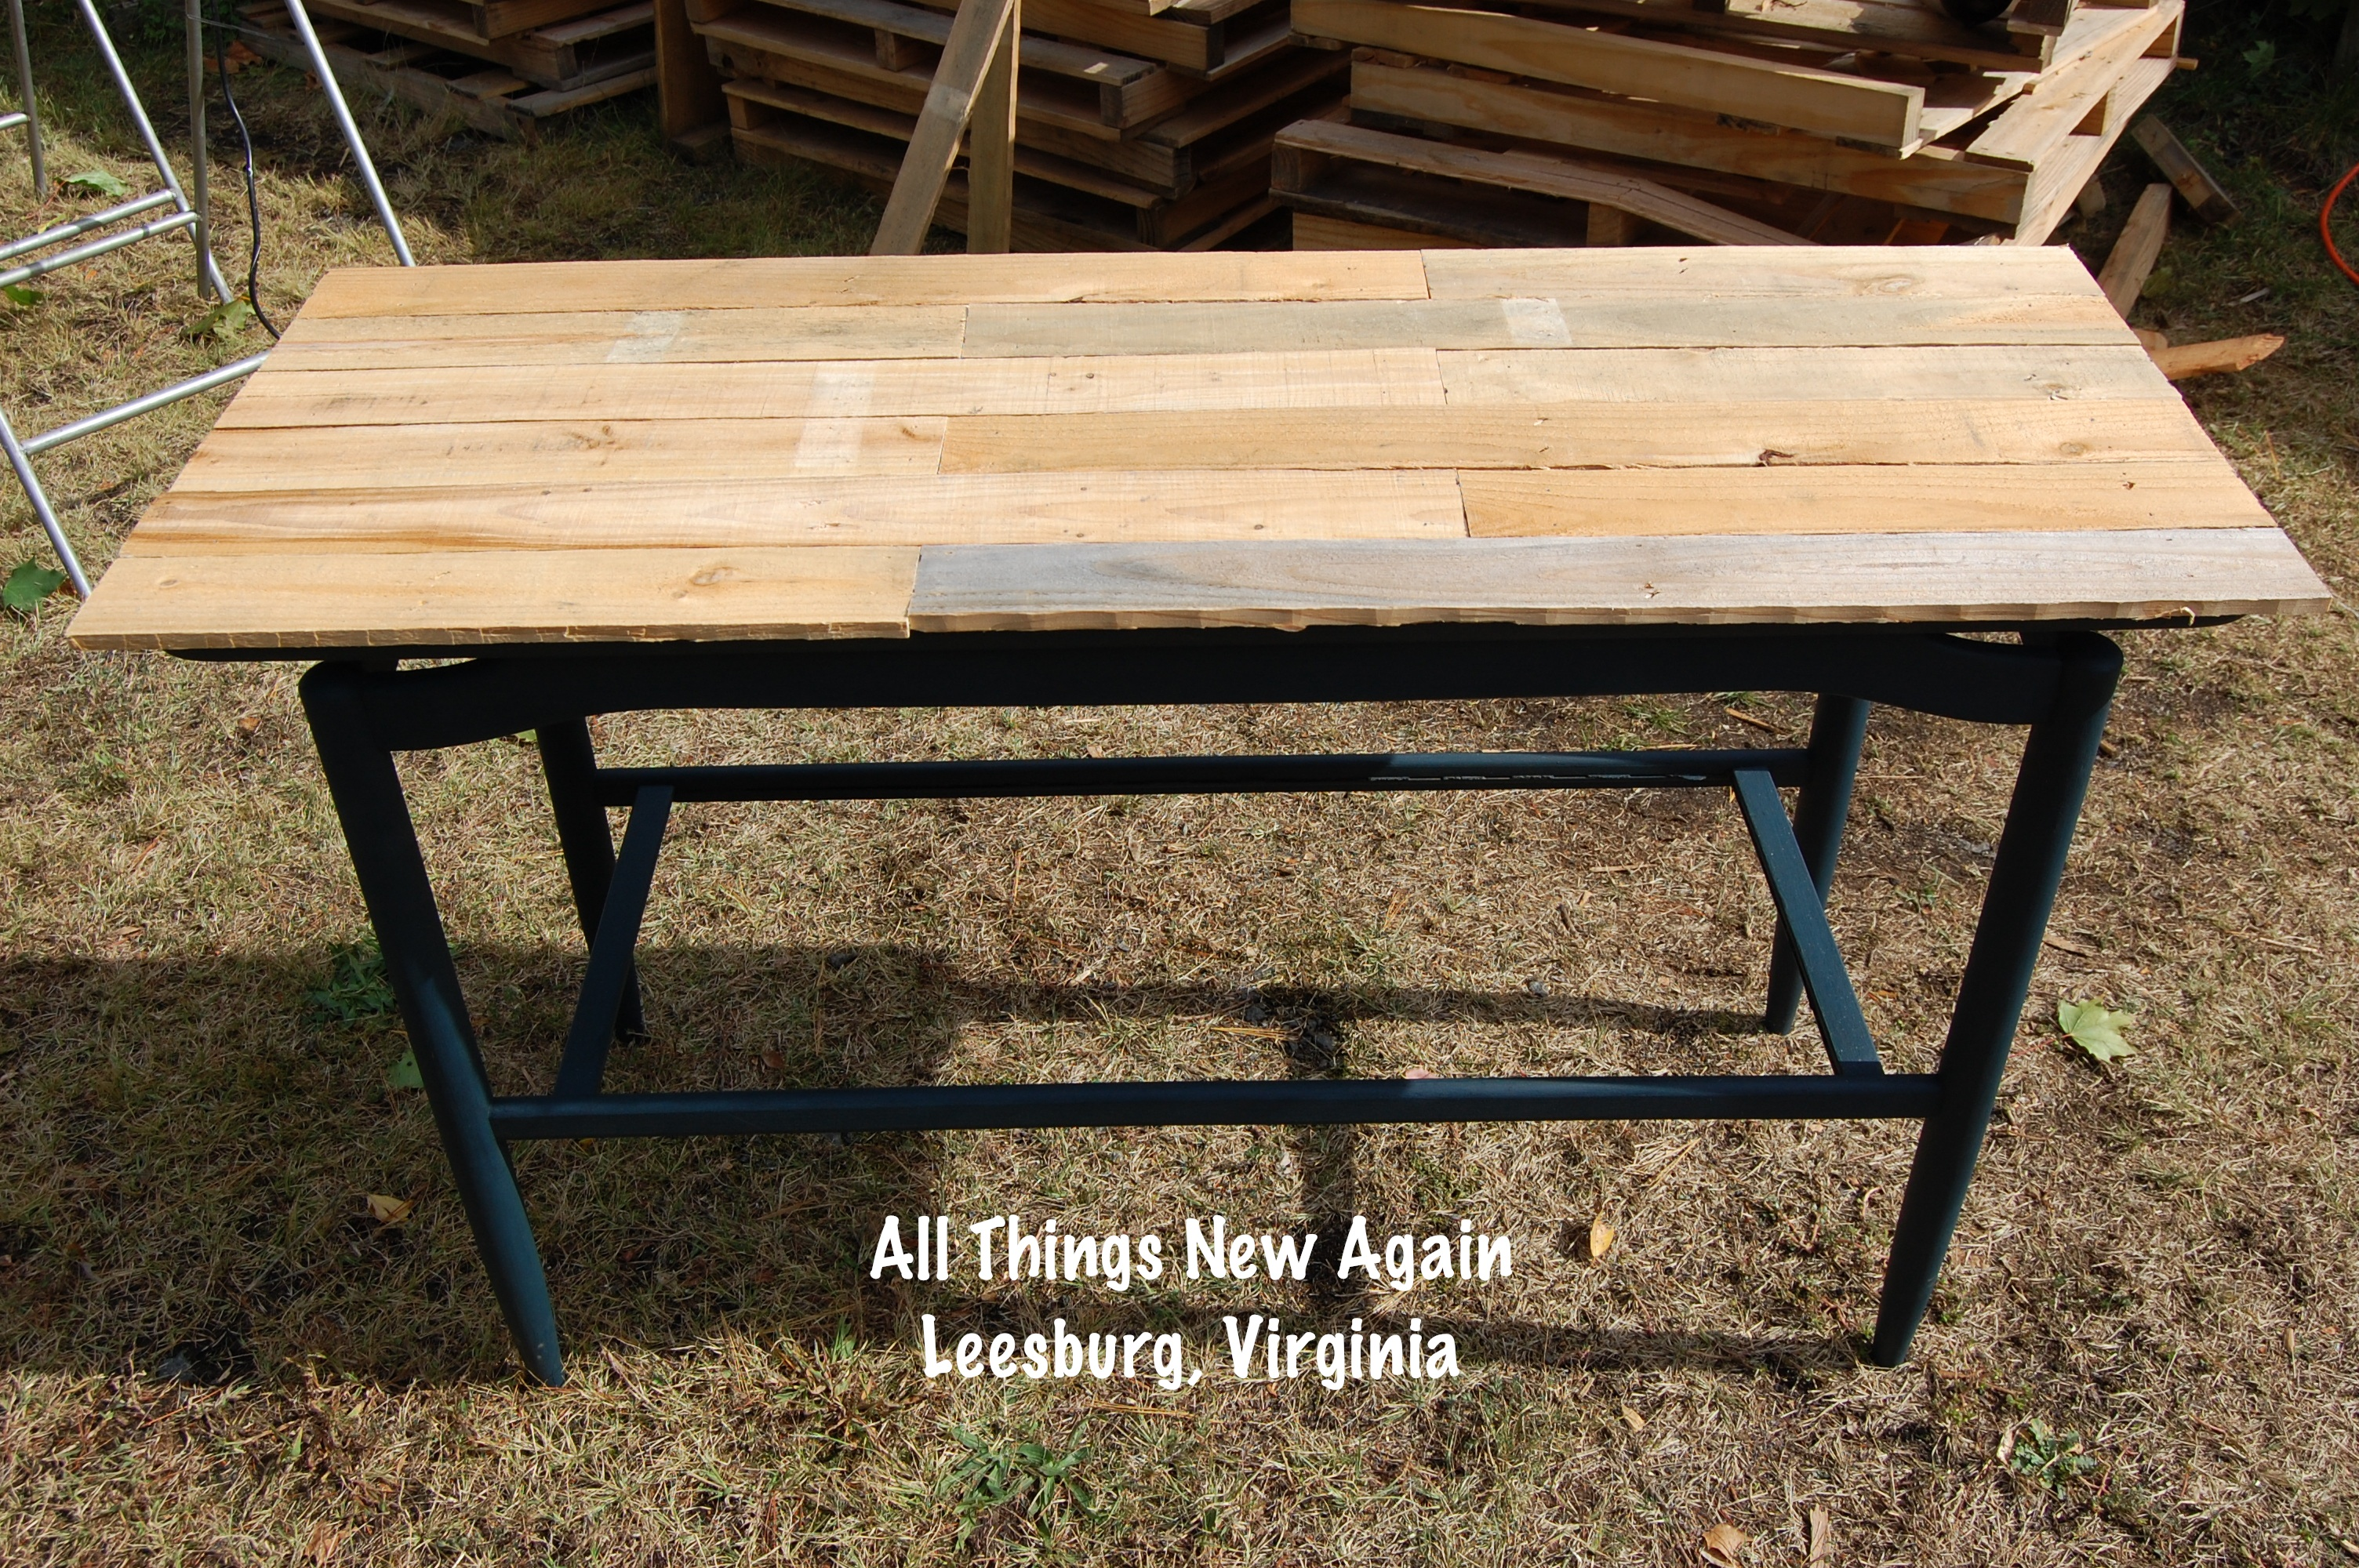 Diy wood pallet tabletop all things new again - How to make table out of wood pallets ...